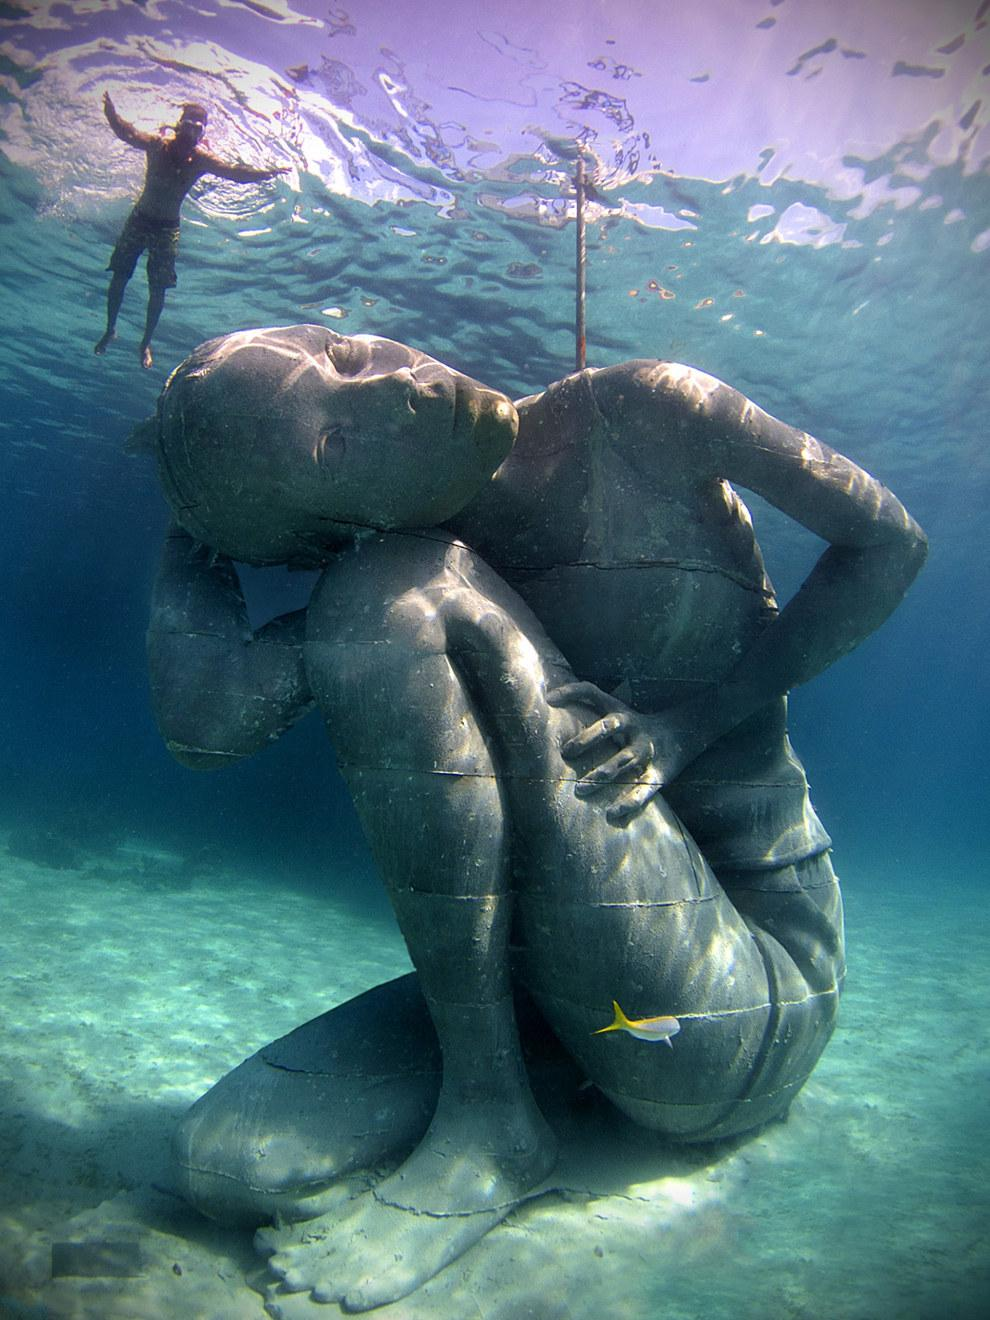 RT @BuzzFeed: An 18 foot, 60 ton girl holds up the ocean in the World's largest ever underwater sculpture http://t.co/ZbpetAH0K8 http://t.c…